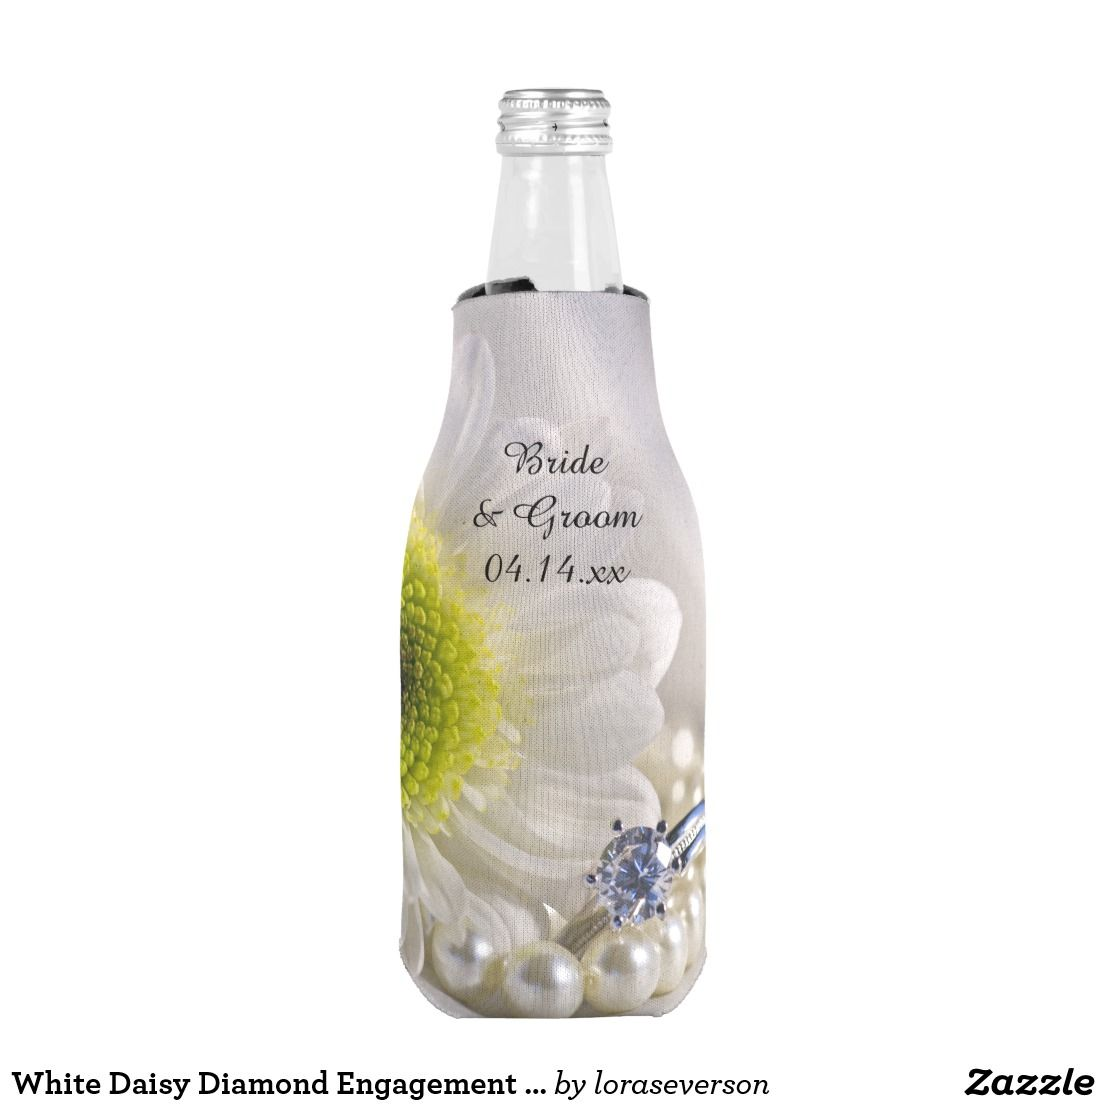 White Daisy Diamond Engagement Ring Wedding Favor Bottle